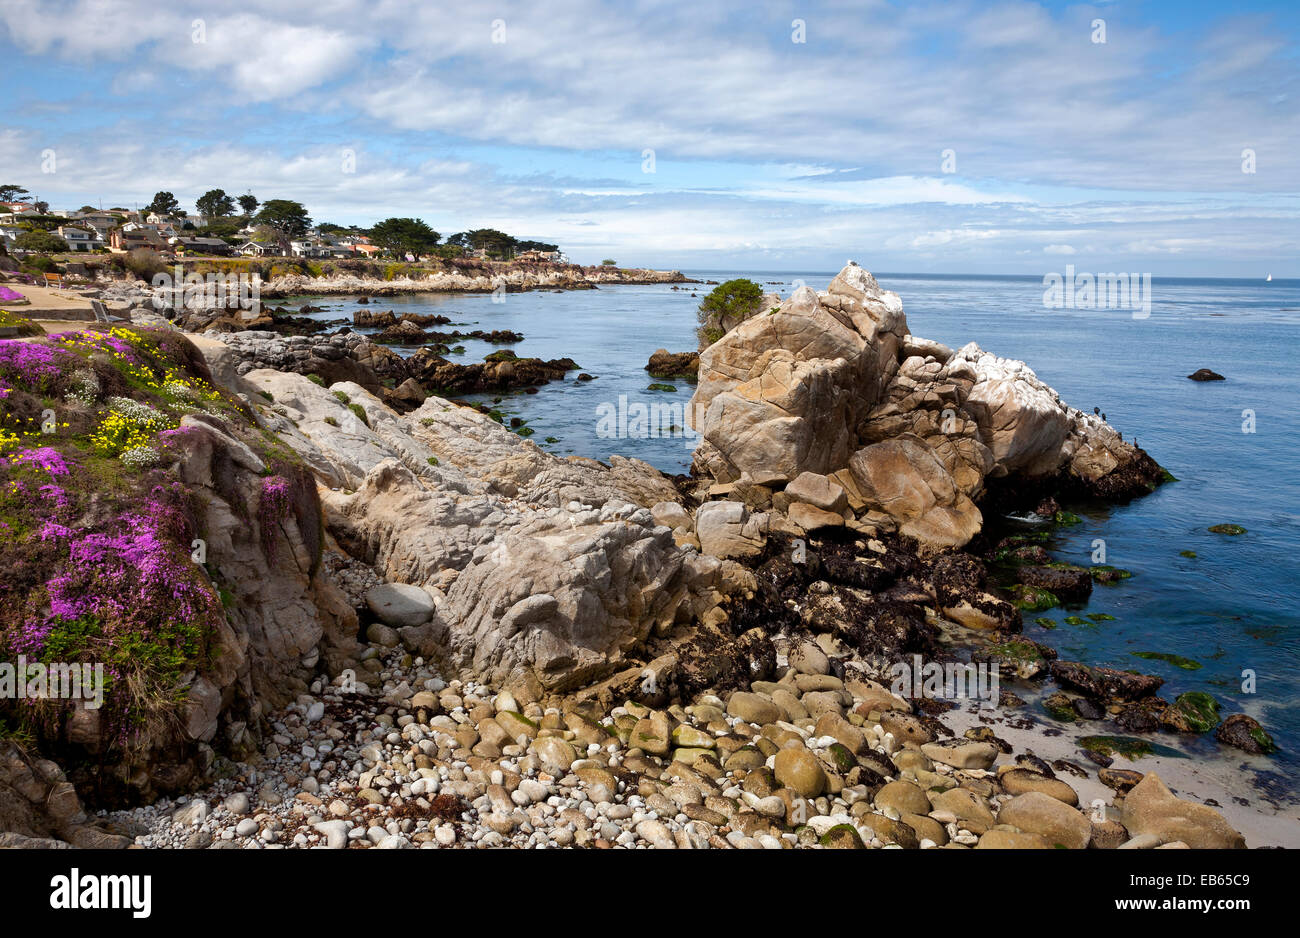 CA02416-00...CALIFORNIA - Colorful flowers blooming along the Monterey waterfront on the shores of Monterey Bay. - Stock Image